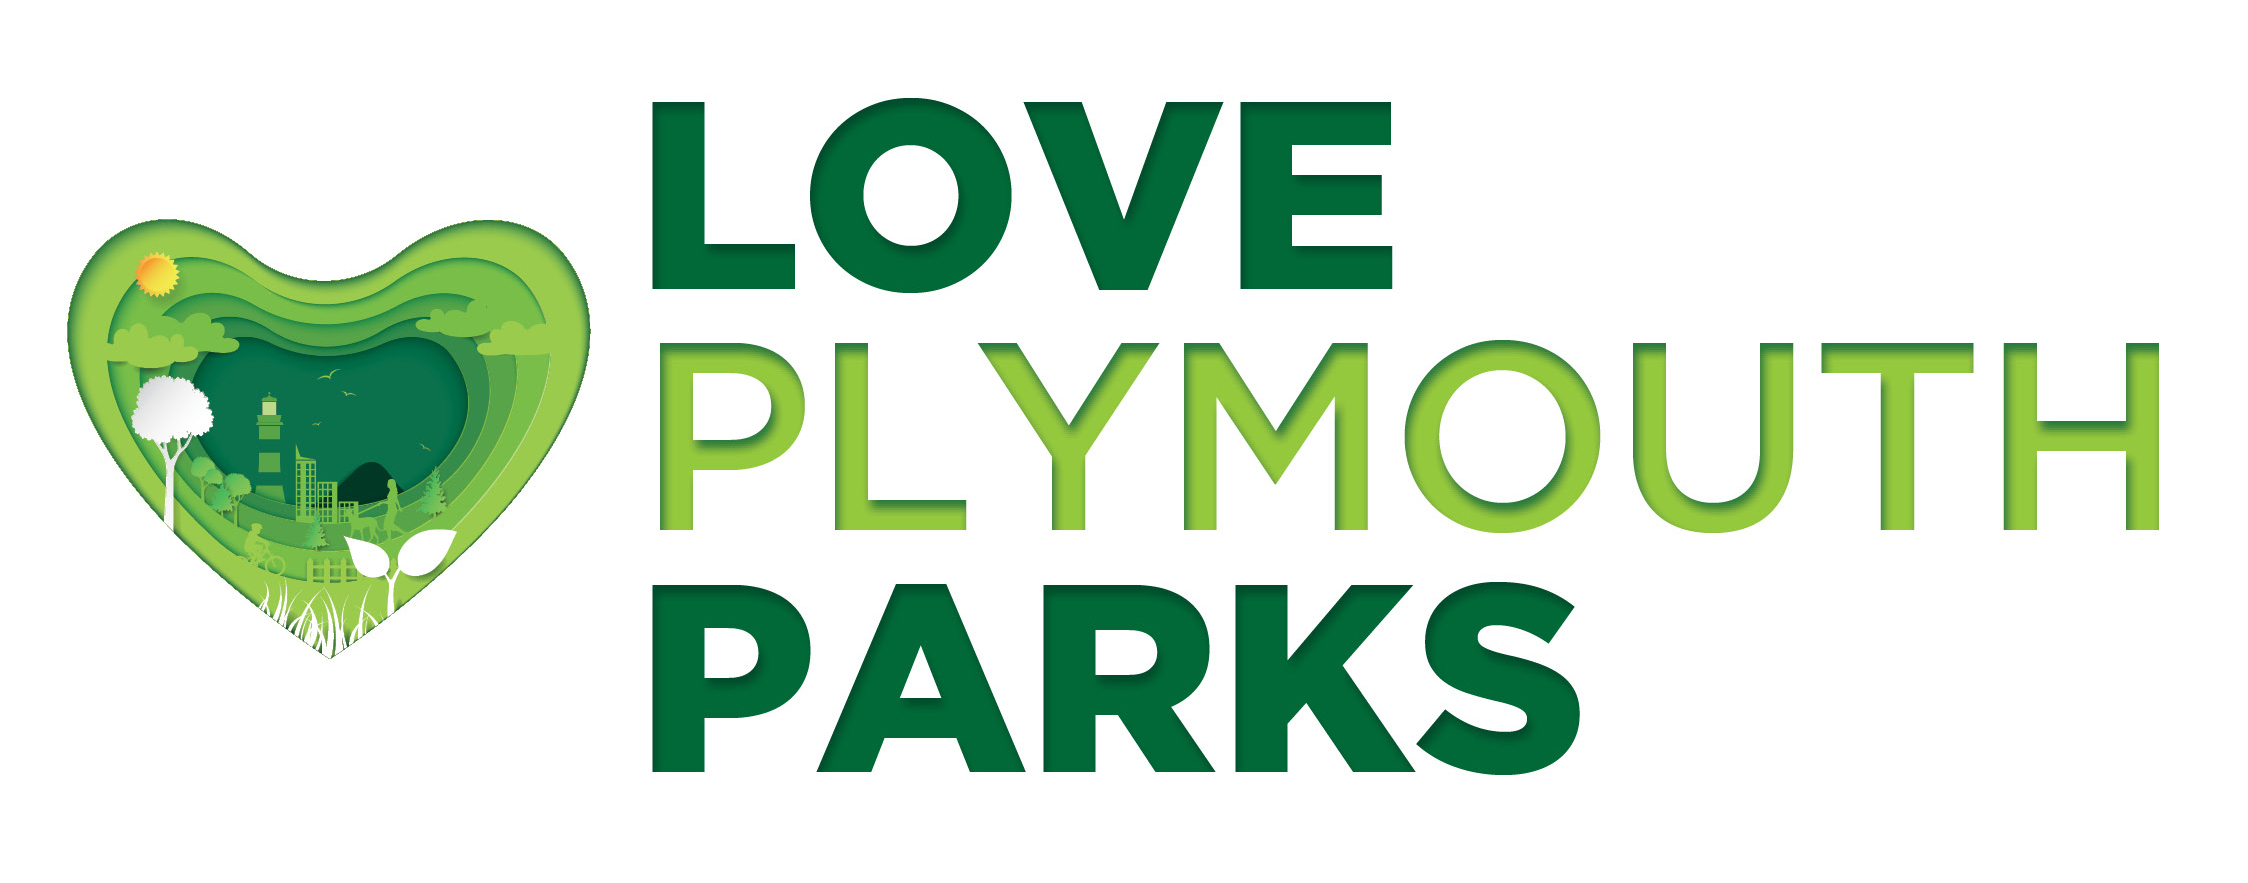 Love Ply,mouth Parks